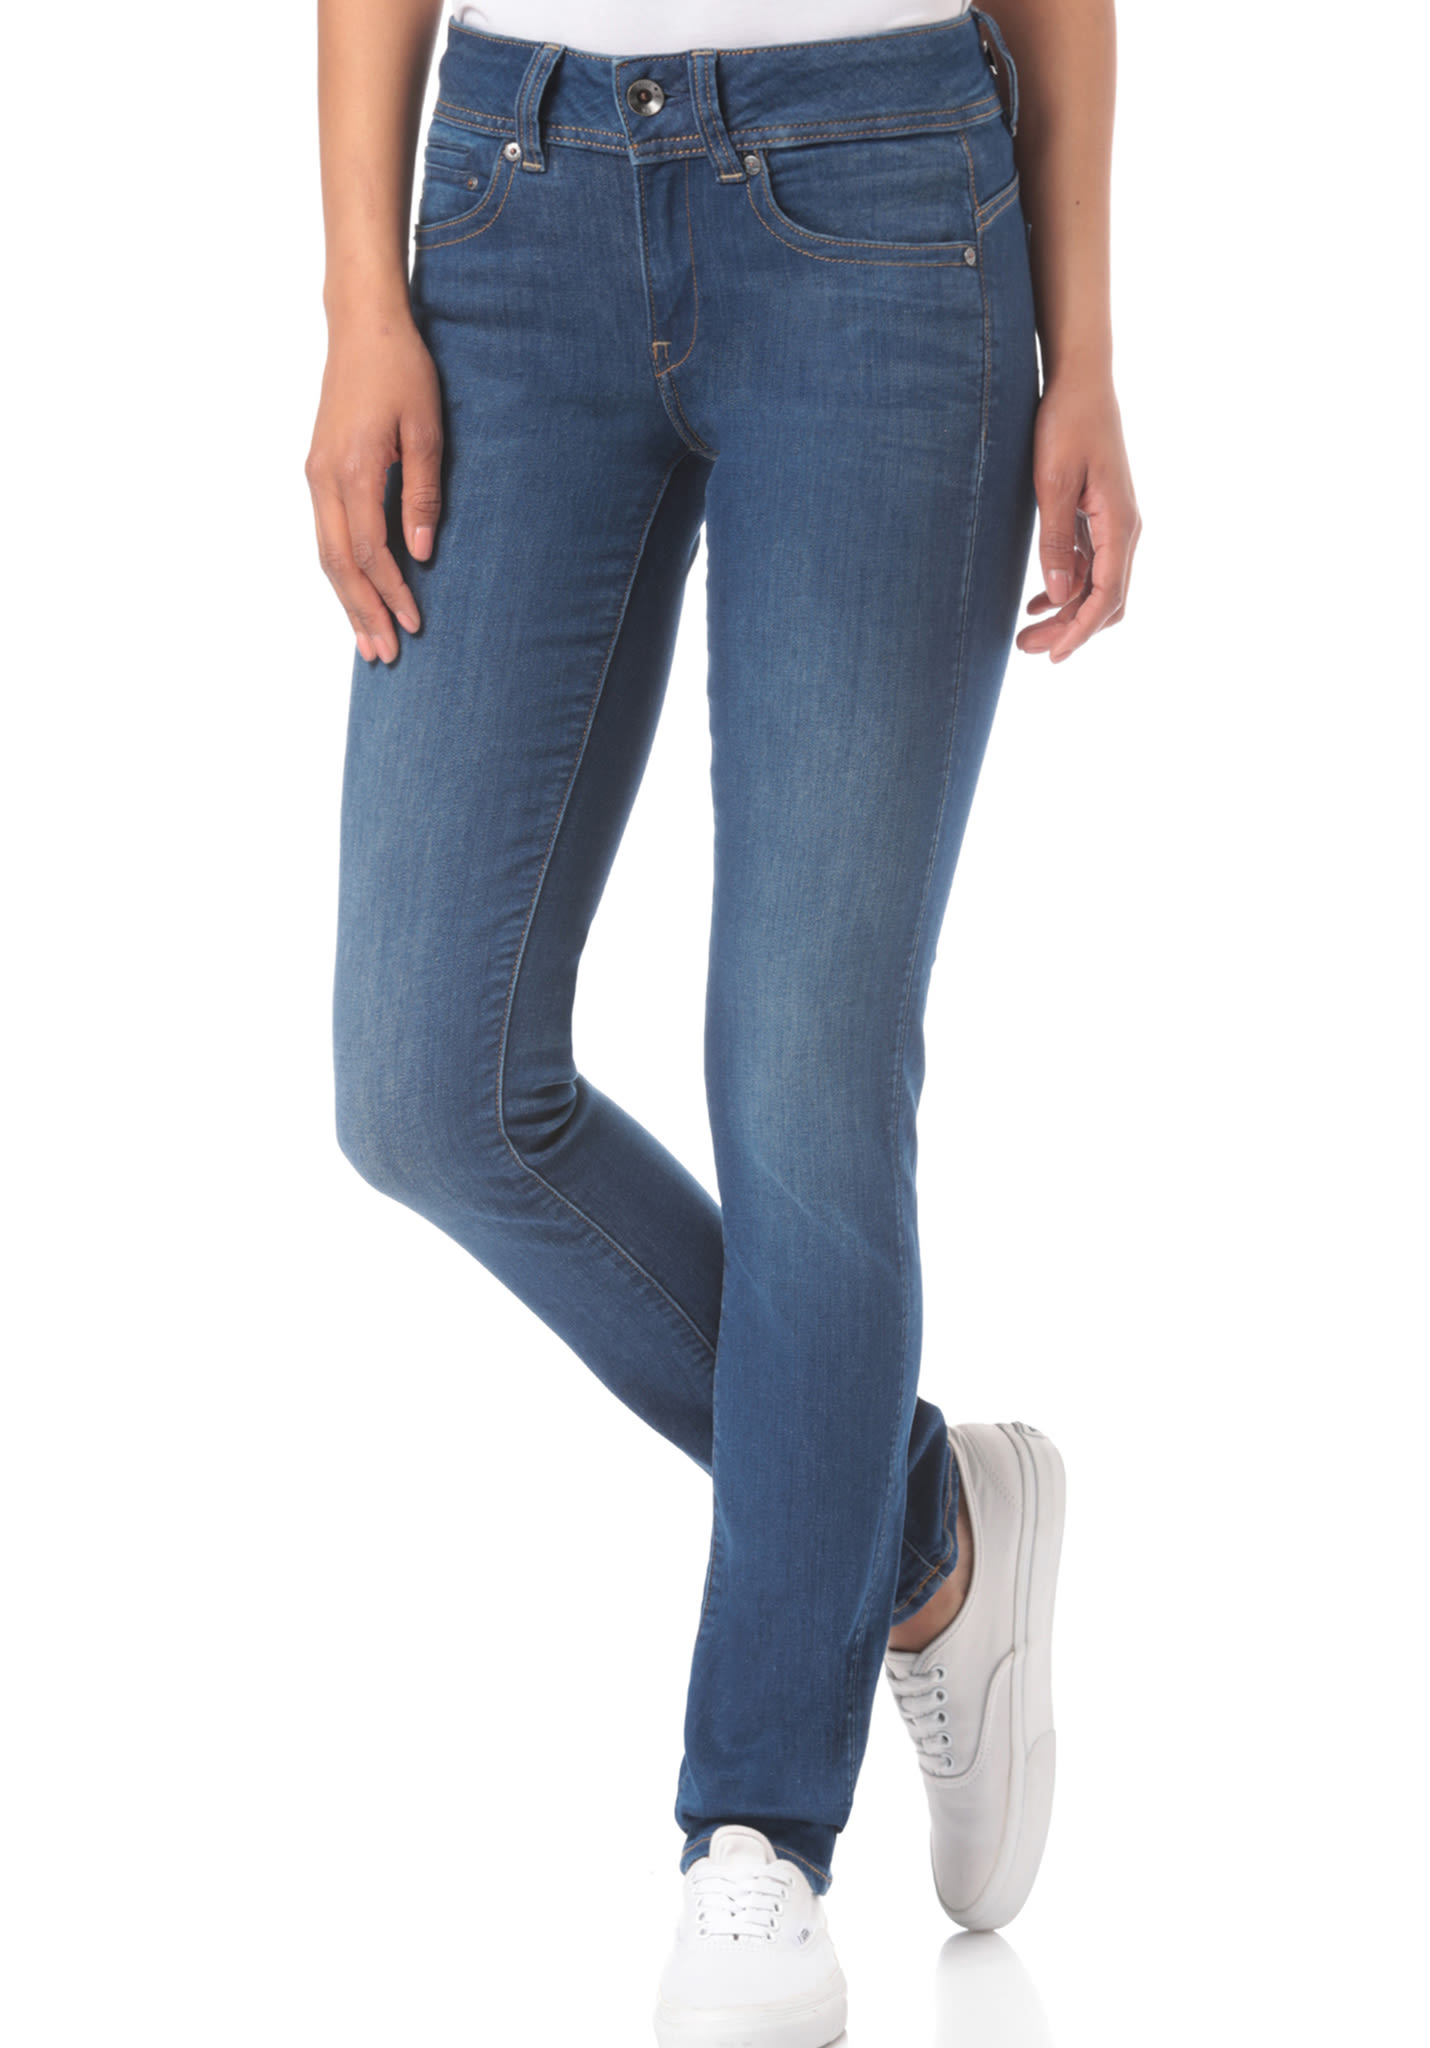 44475786547 G-STAR Midge Saddle Mid Straight/Ment Superstretch - Denim Jeans for Women  - Blue - Planet Sports